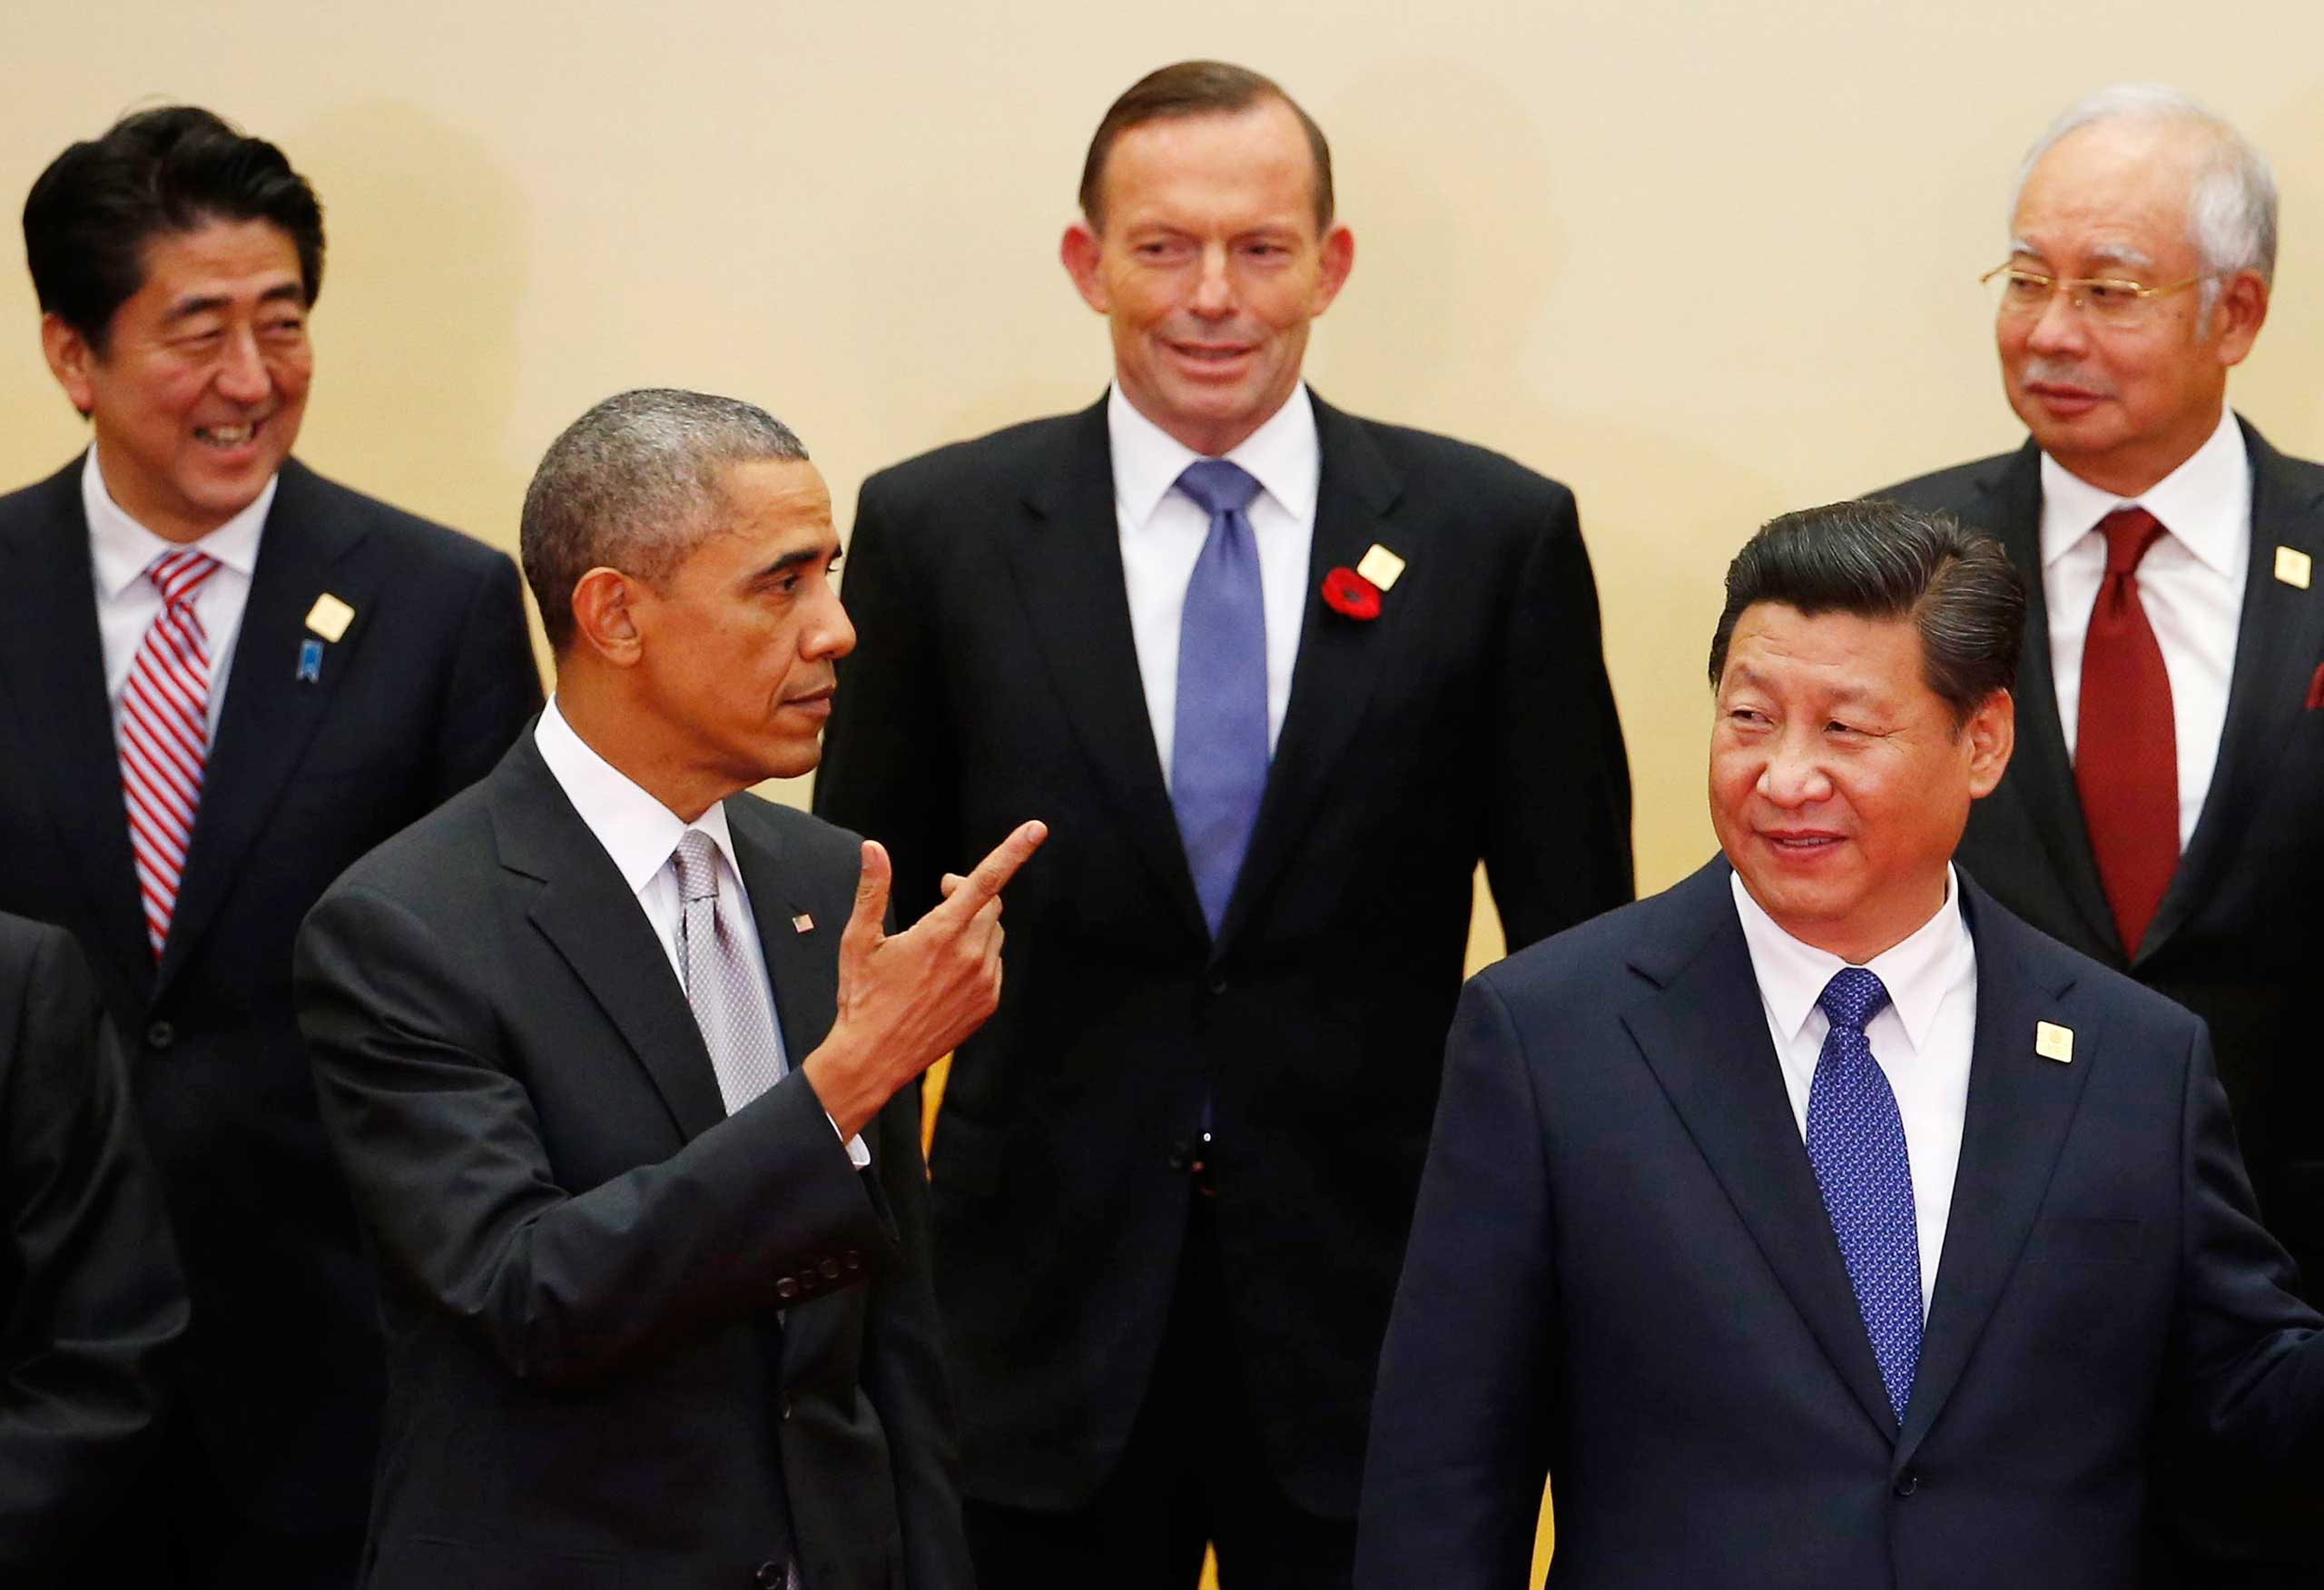 U.S. President Barack Obama gestures next to China's President Xi Jinping during the APEC leaders' meeting at the International Convention Center at Yanqi Lake in Beijing on Nov. 11, 2014.